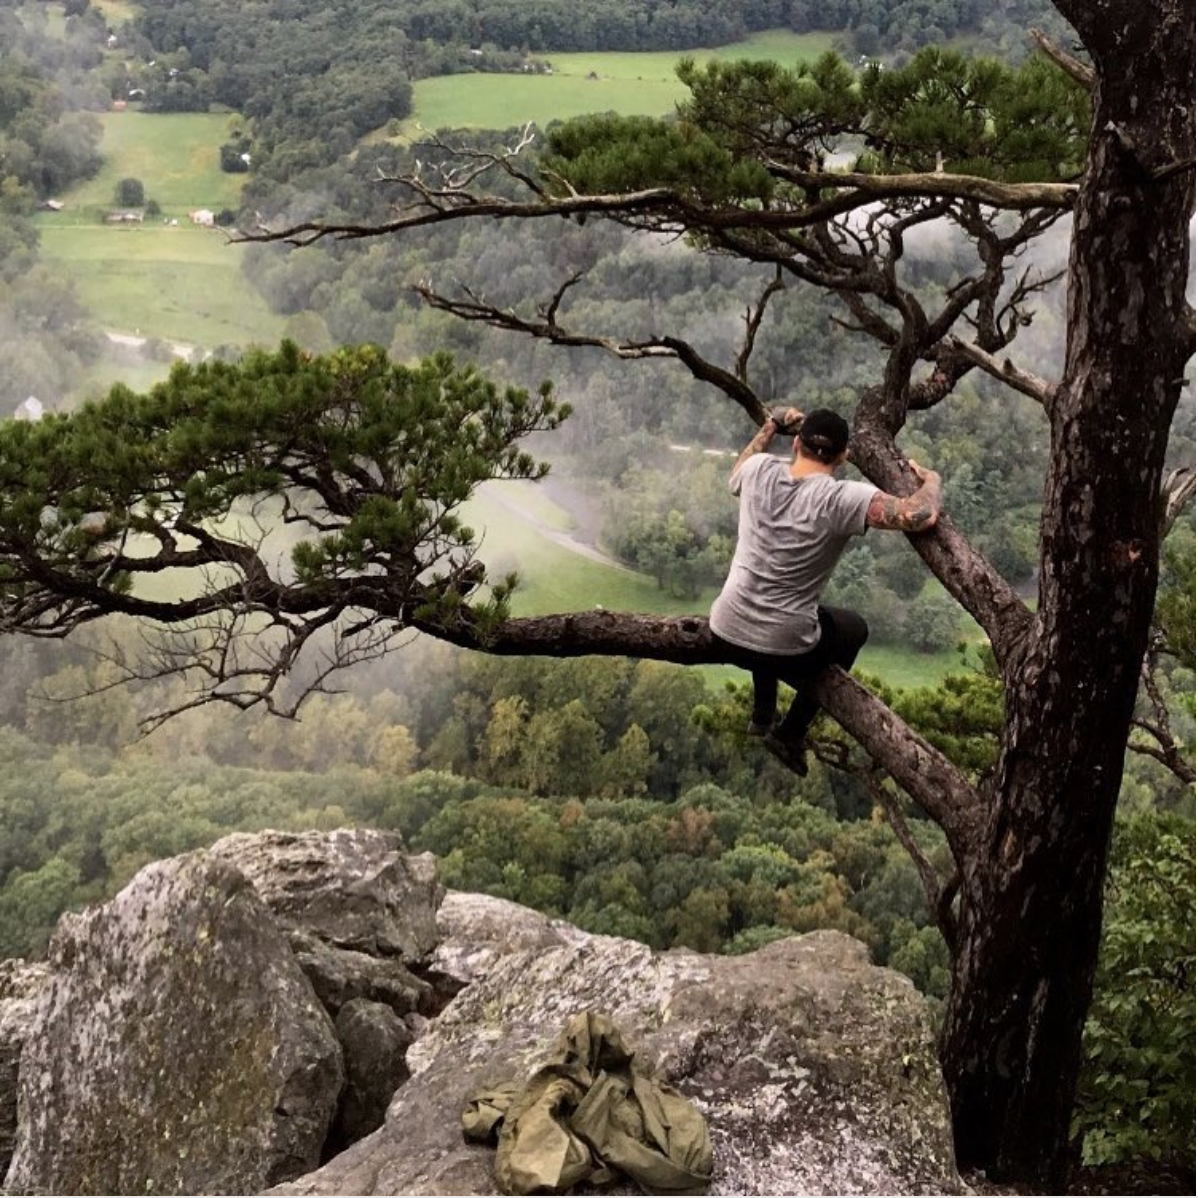 Seneca Rock in West Virginia is just 3.5 hours outside of D.C., but the{ }Spruce Knob-Seneca Rocks National Recreation Area has options for everyone. If you choose to hike though, the view is definitely worth it. (Image via @scilliansaintt)